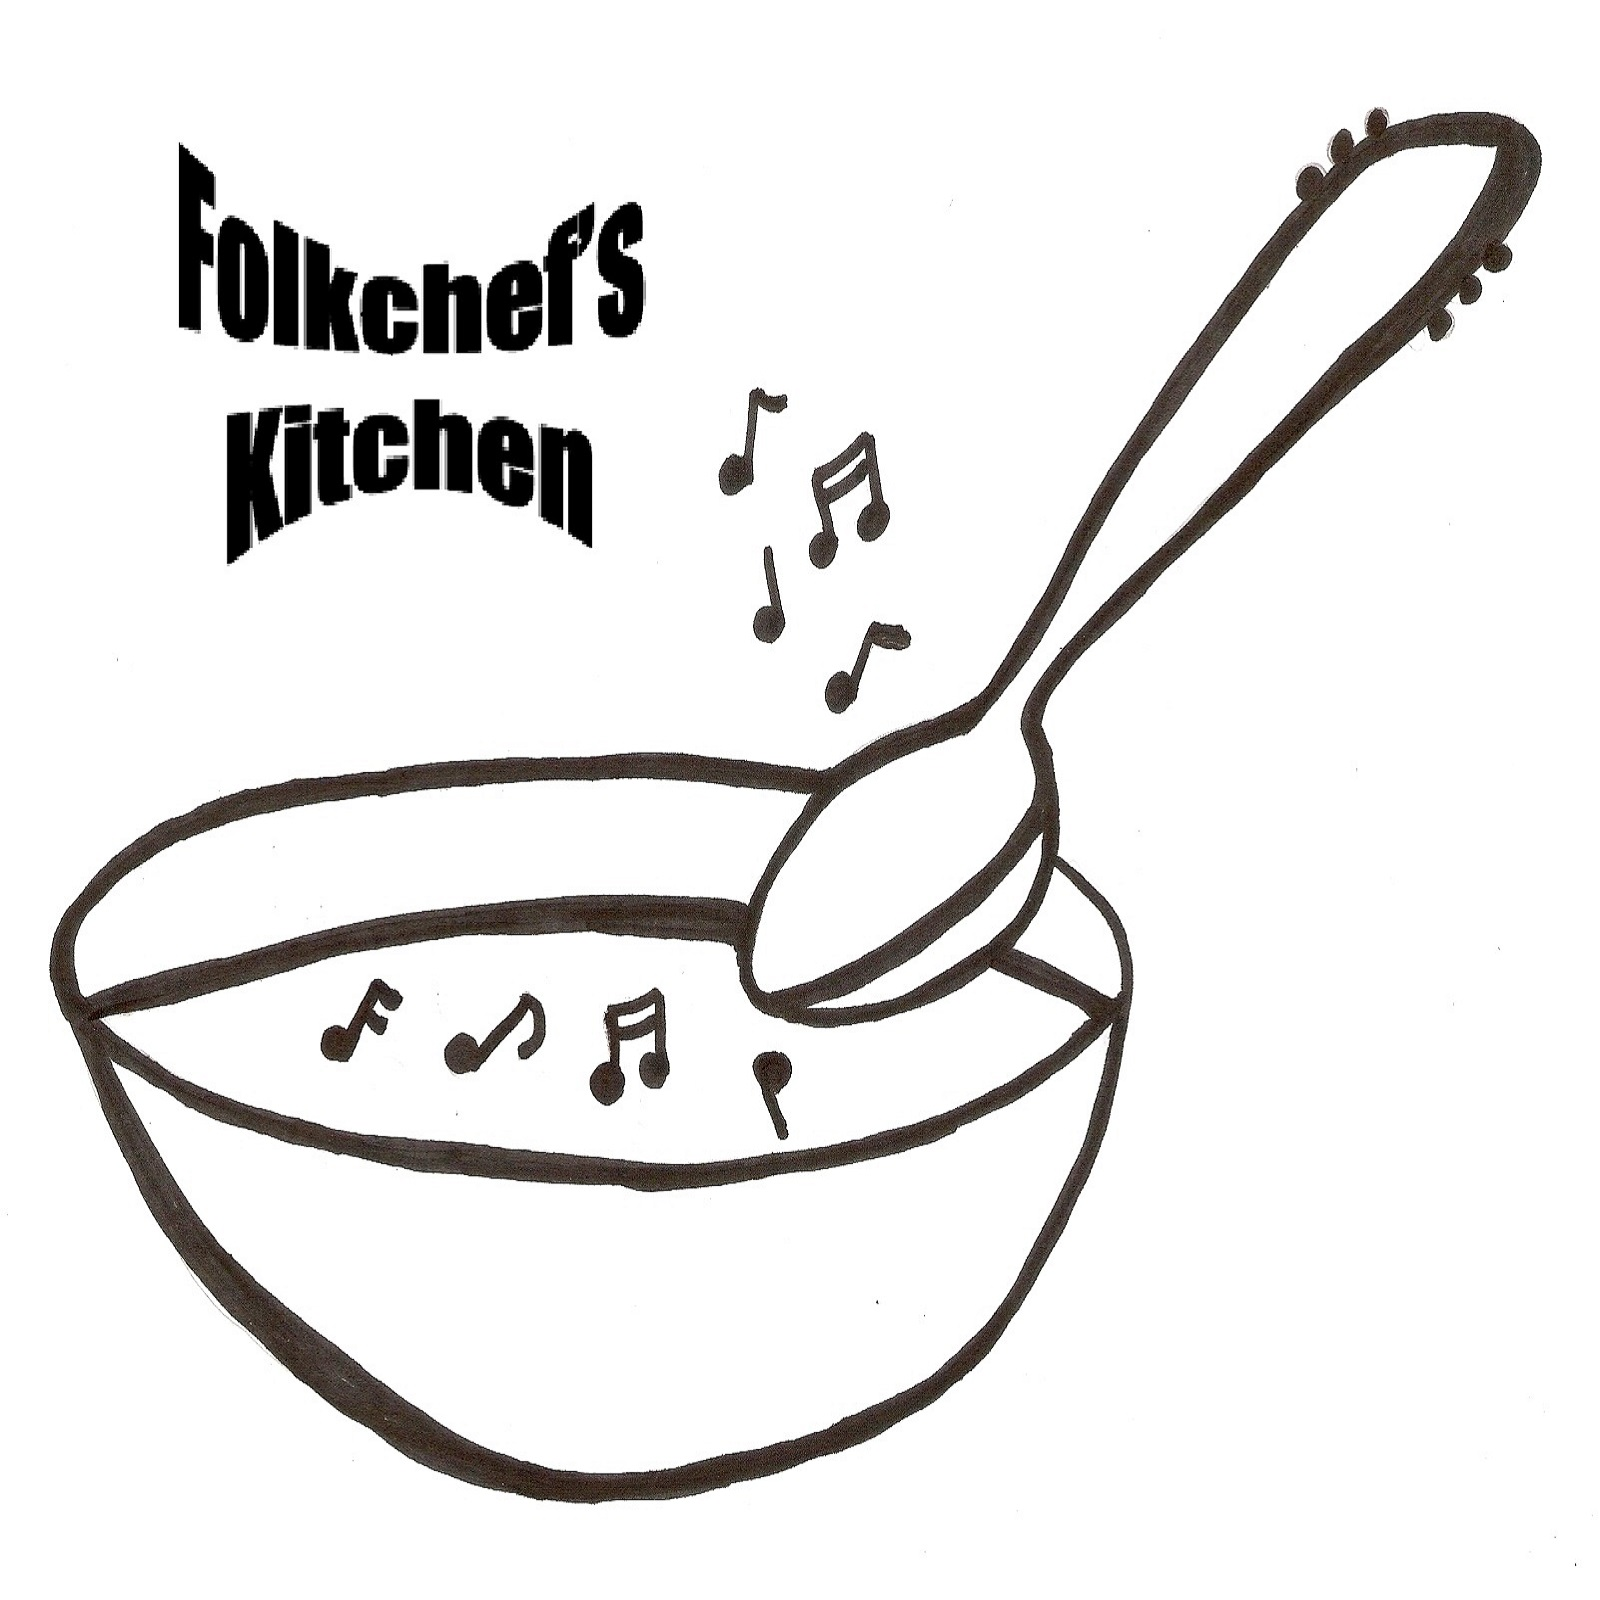 The Folkchef's Kitchen - Episode 53